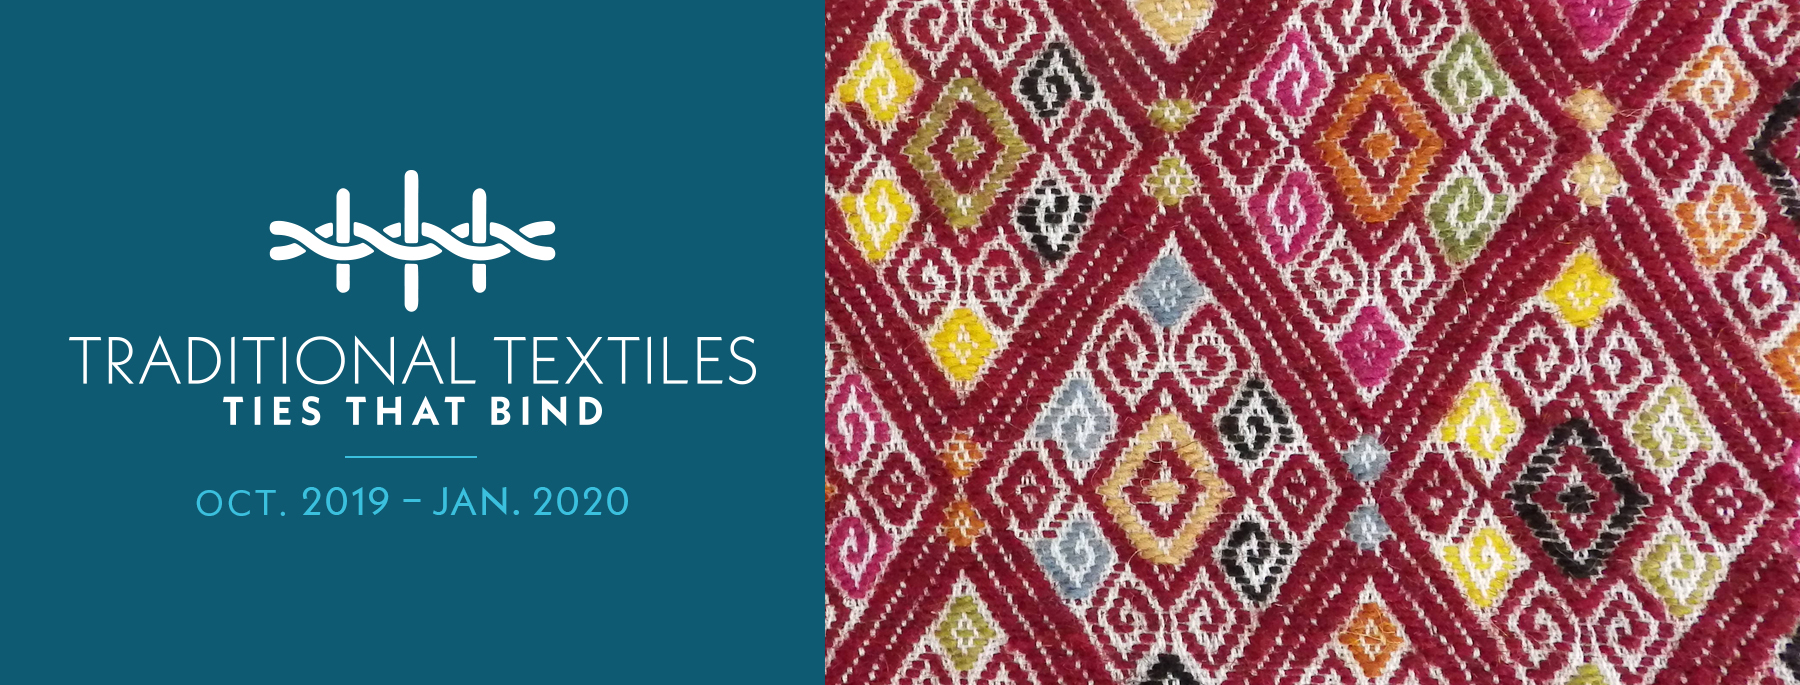 """Close up of Mayan weaving diamond shape patter with reds, blues, yellows, greens, and black. Exhibition title """"Traditional Textiles: Ties that Bind"""" and exhibition span dates, October 2019 to January 2020."""